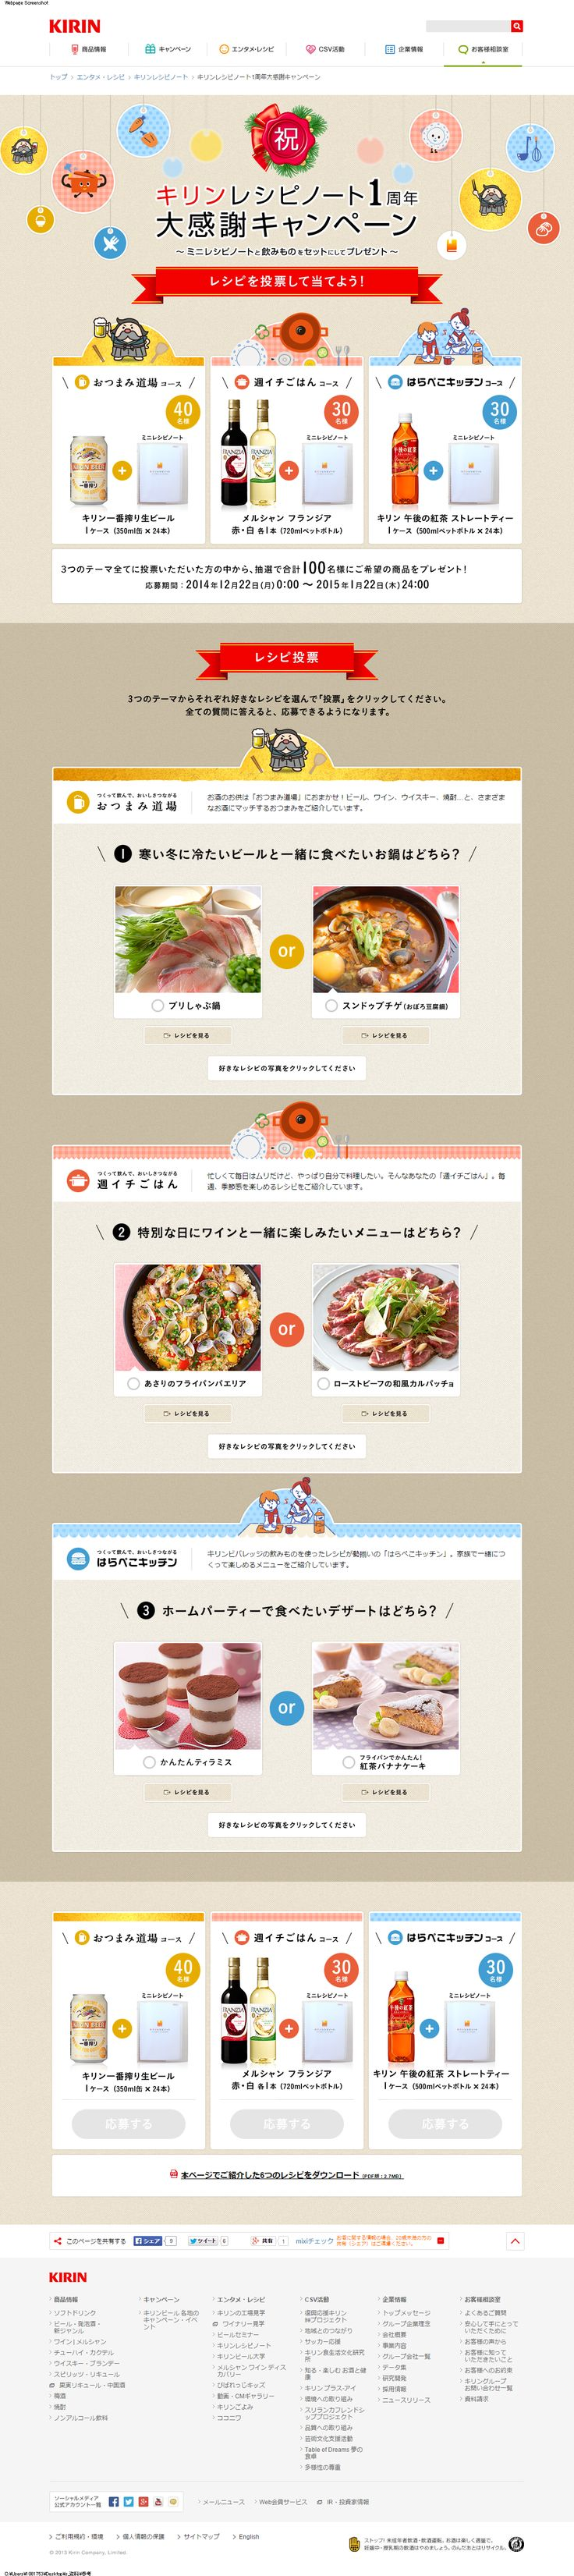 http://recipe.kirin.co.jp/thanks_campaign/index.html